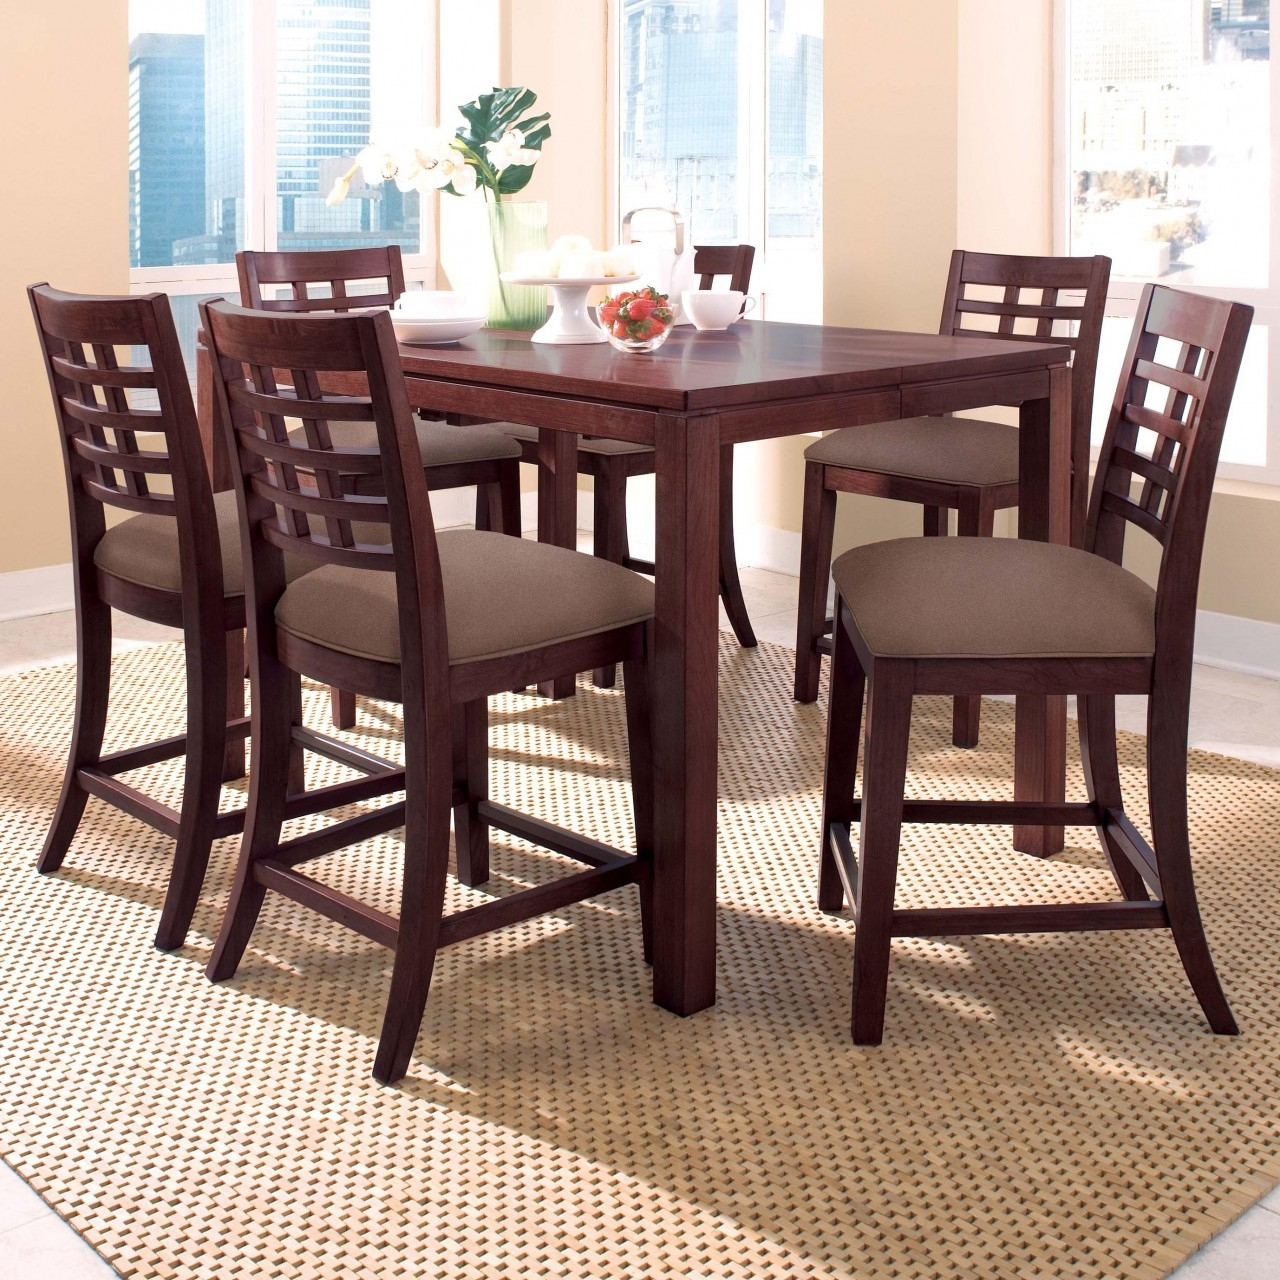 Tall Square Kitchen Table Sets